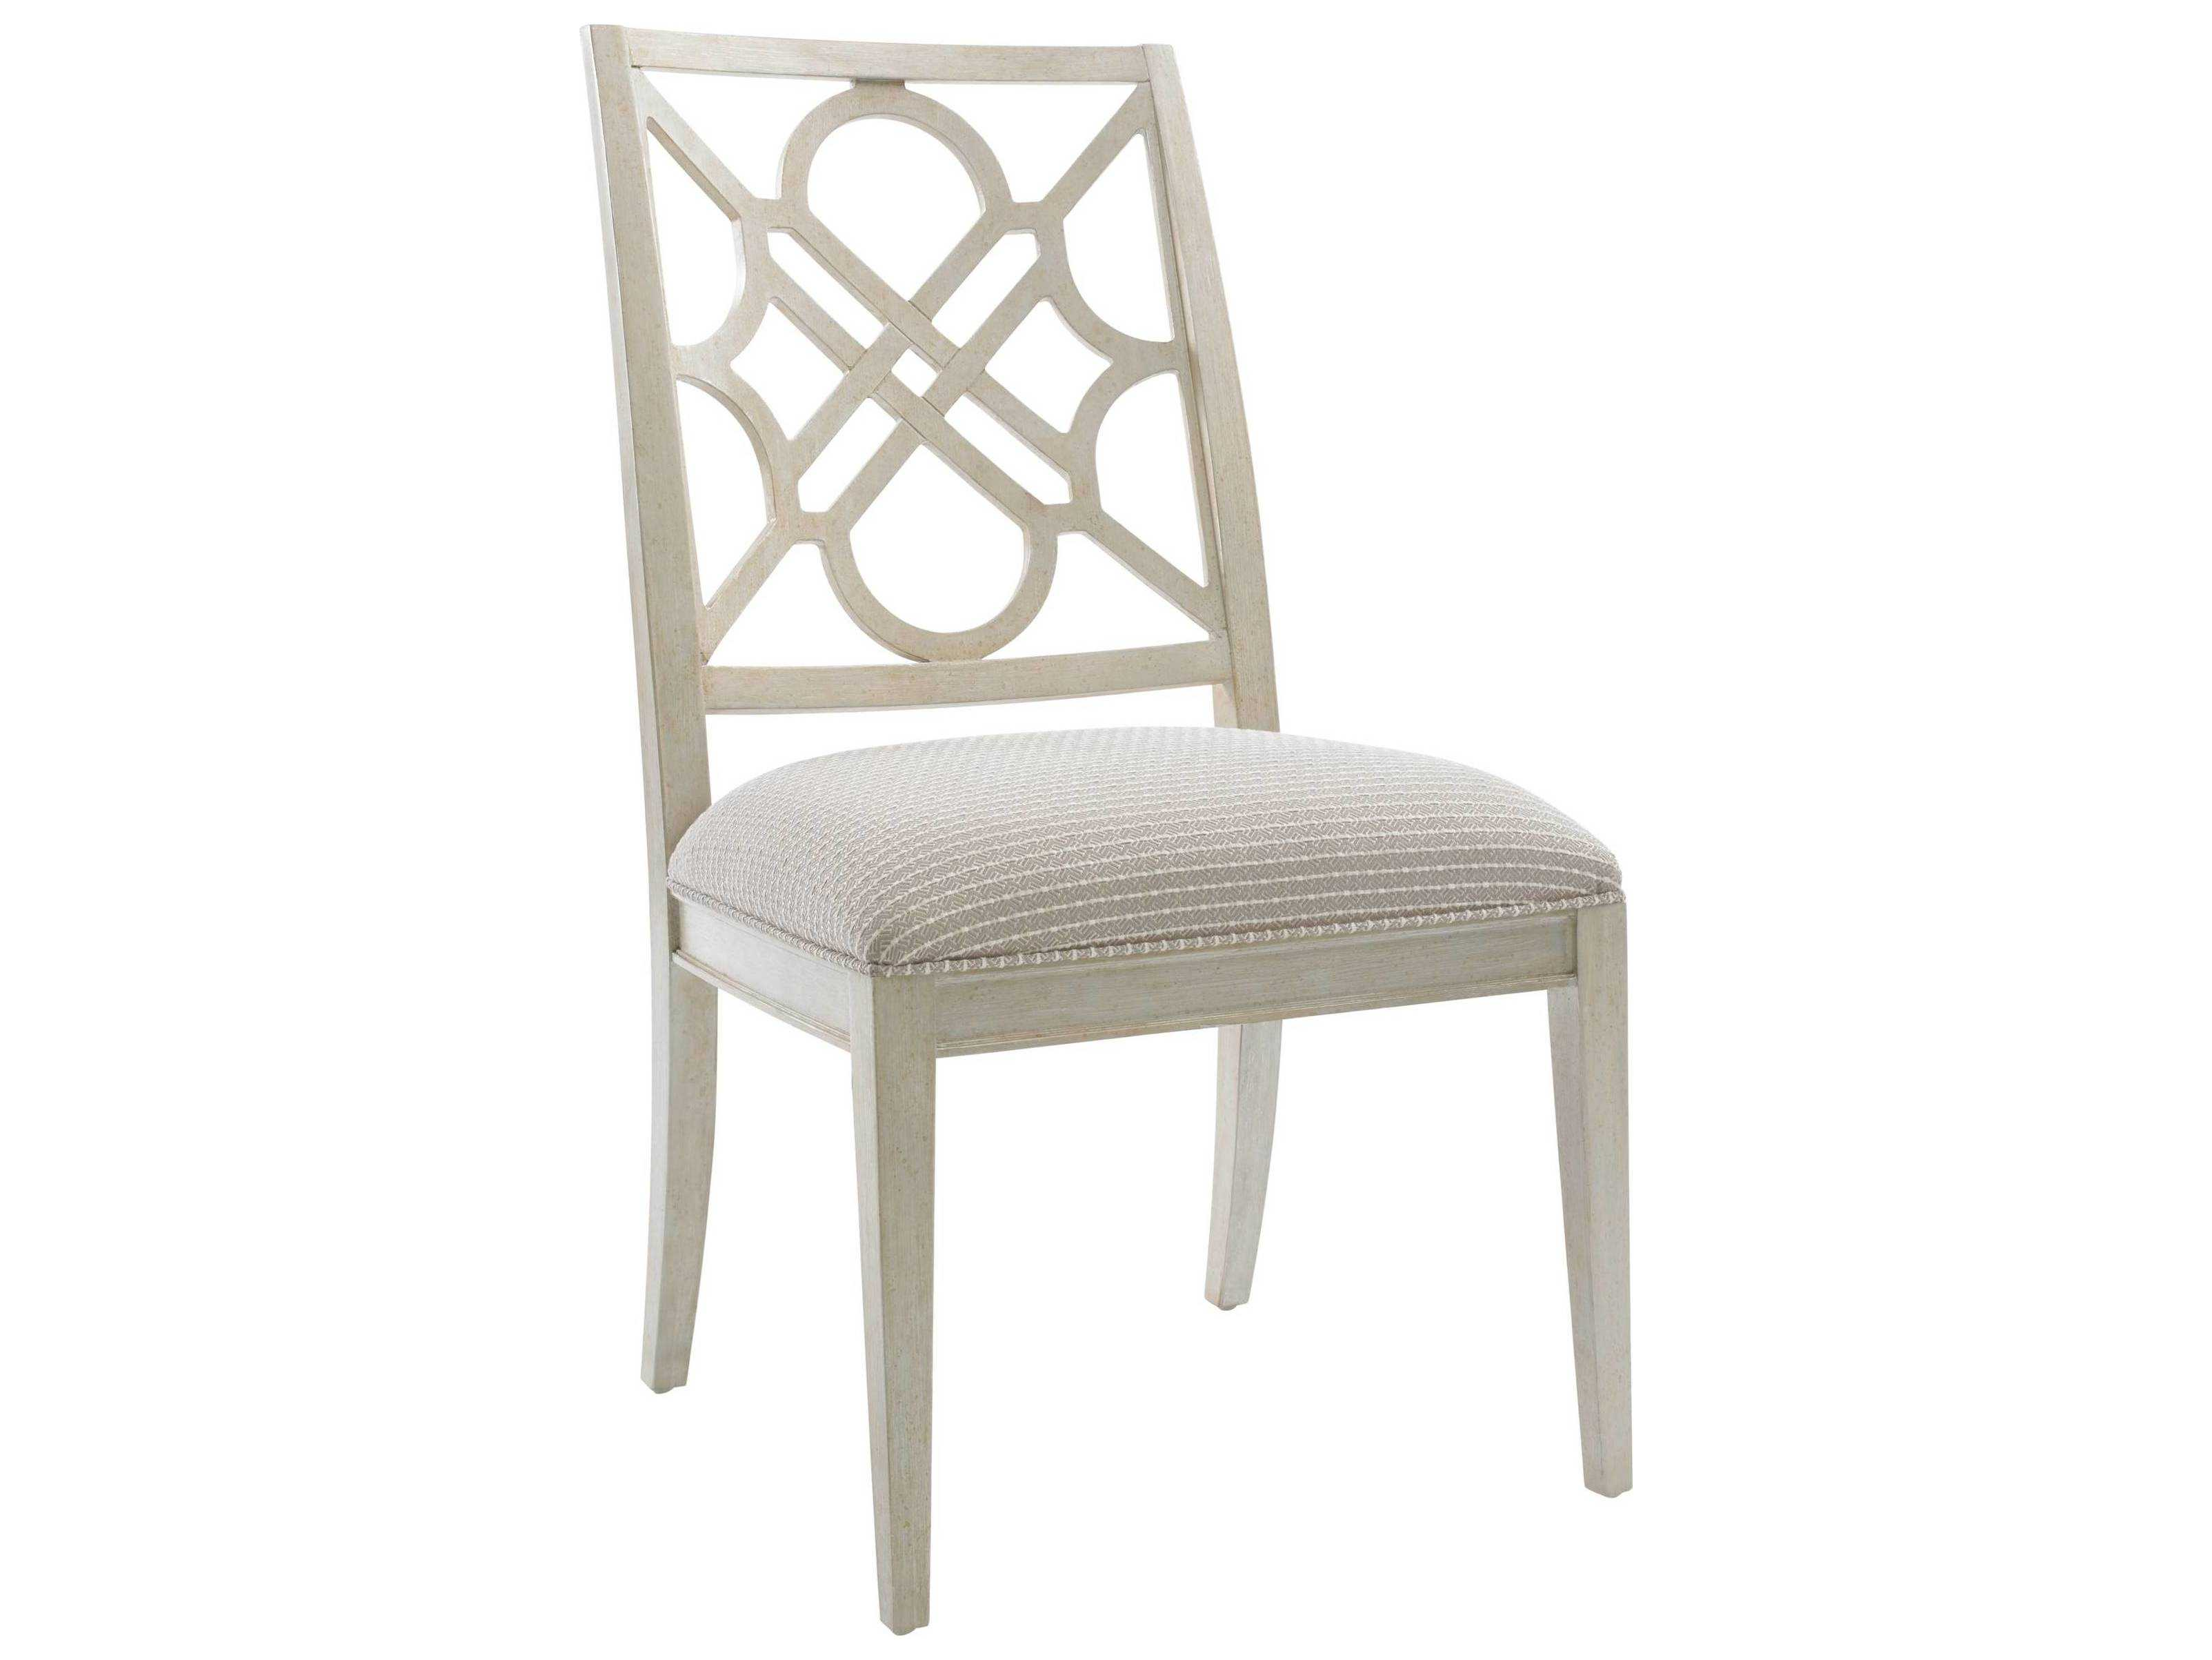 Stanley Furniture Dining Room Stanley Furniture Fairlane Luna Wood Dining Side Chair 417 21 60